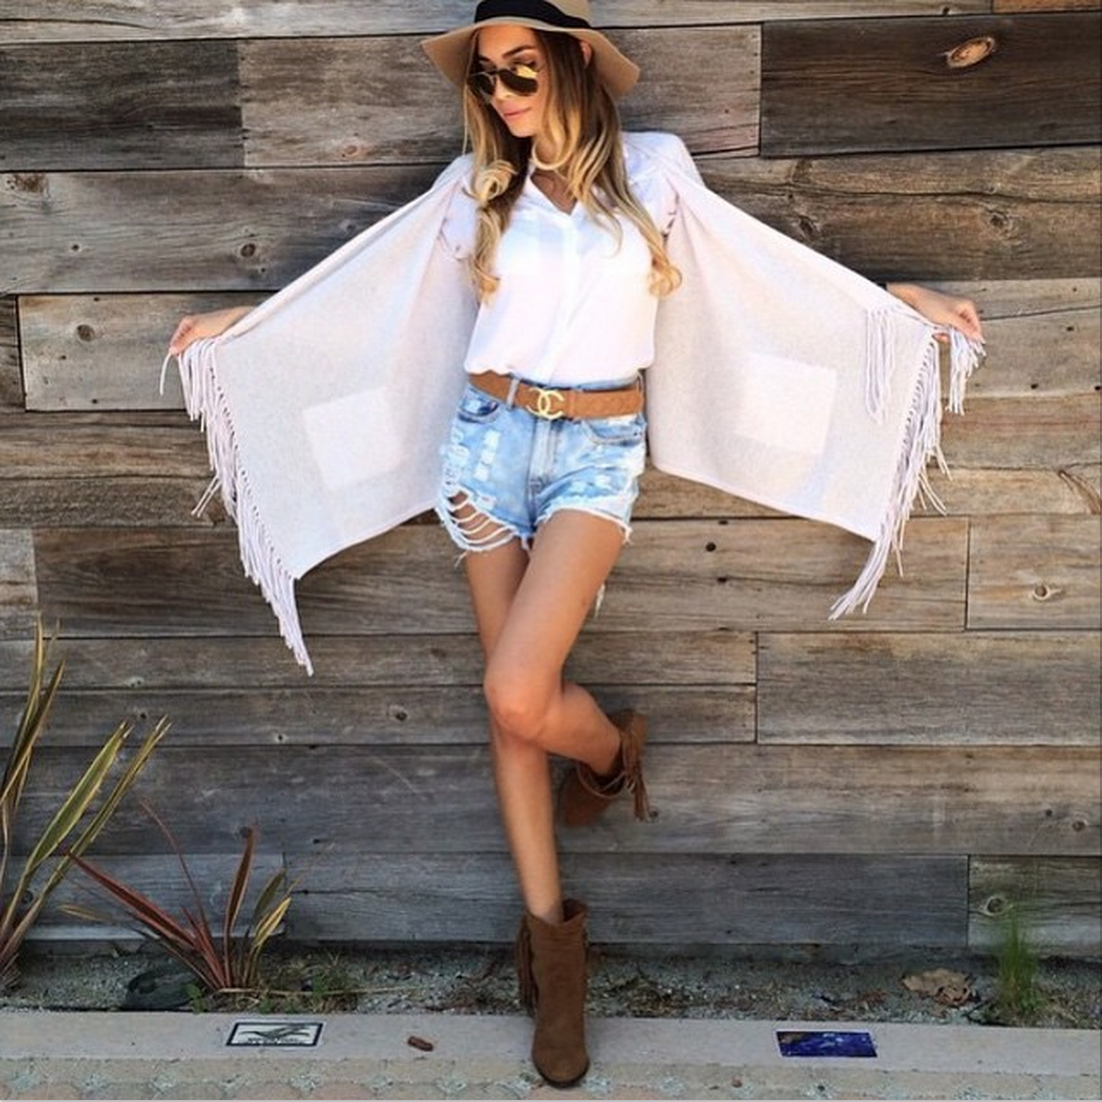 RT @Sam_Edelman: Jasmine_tosh in the 'Louie' fringed bootie... https://t.co/AAyiNdPNFa http://t.co/W5y8aViFoG